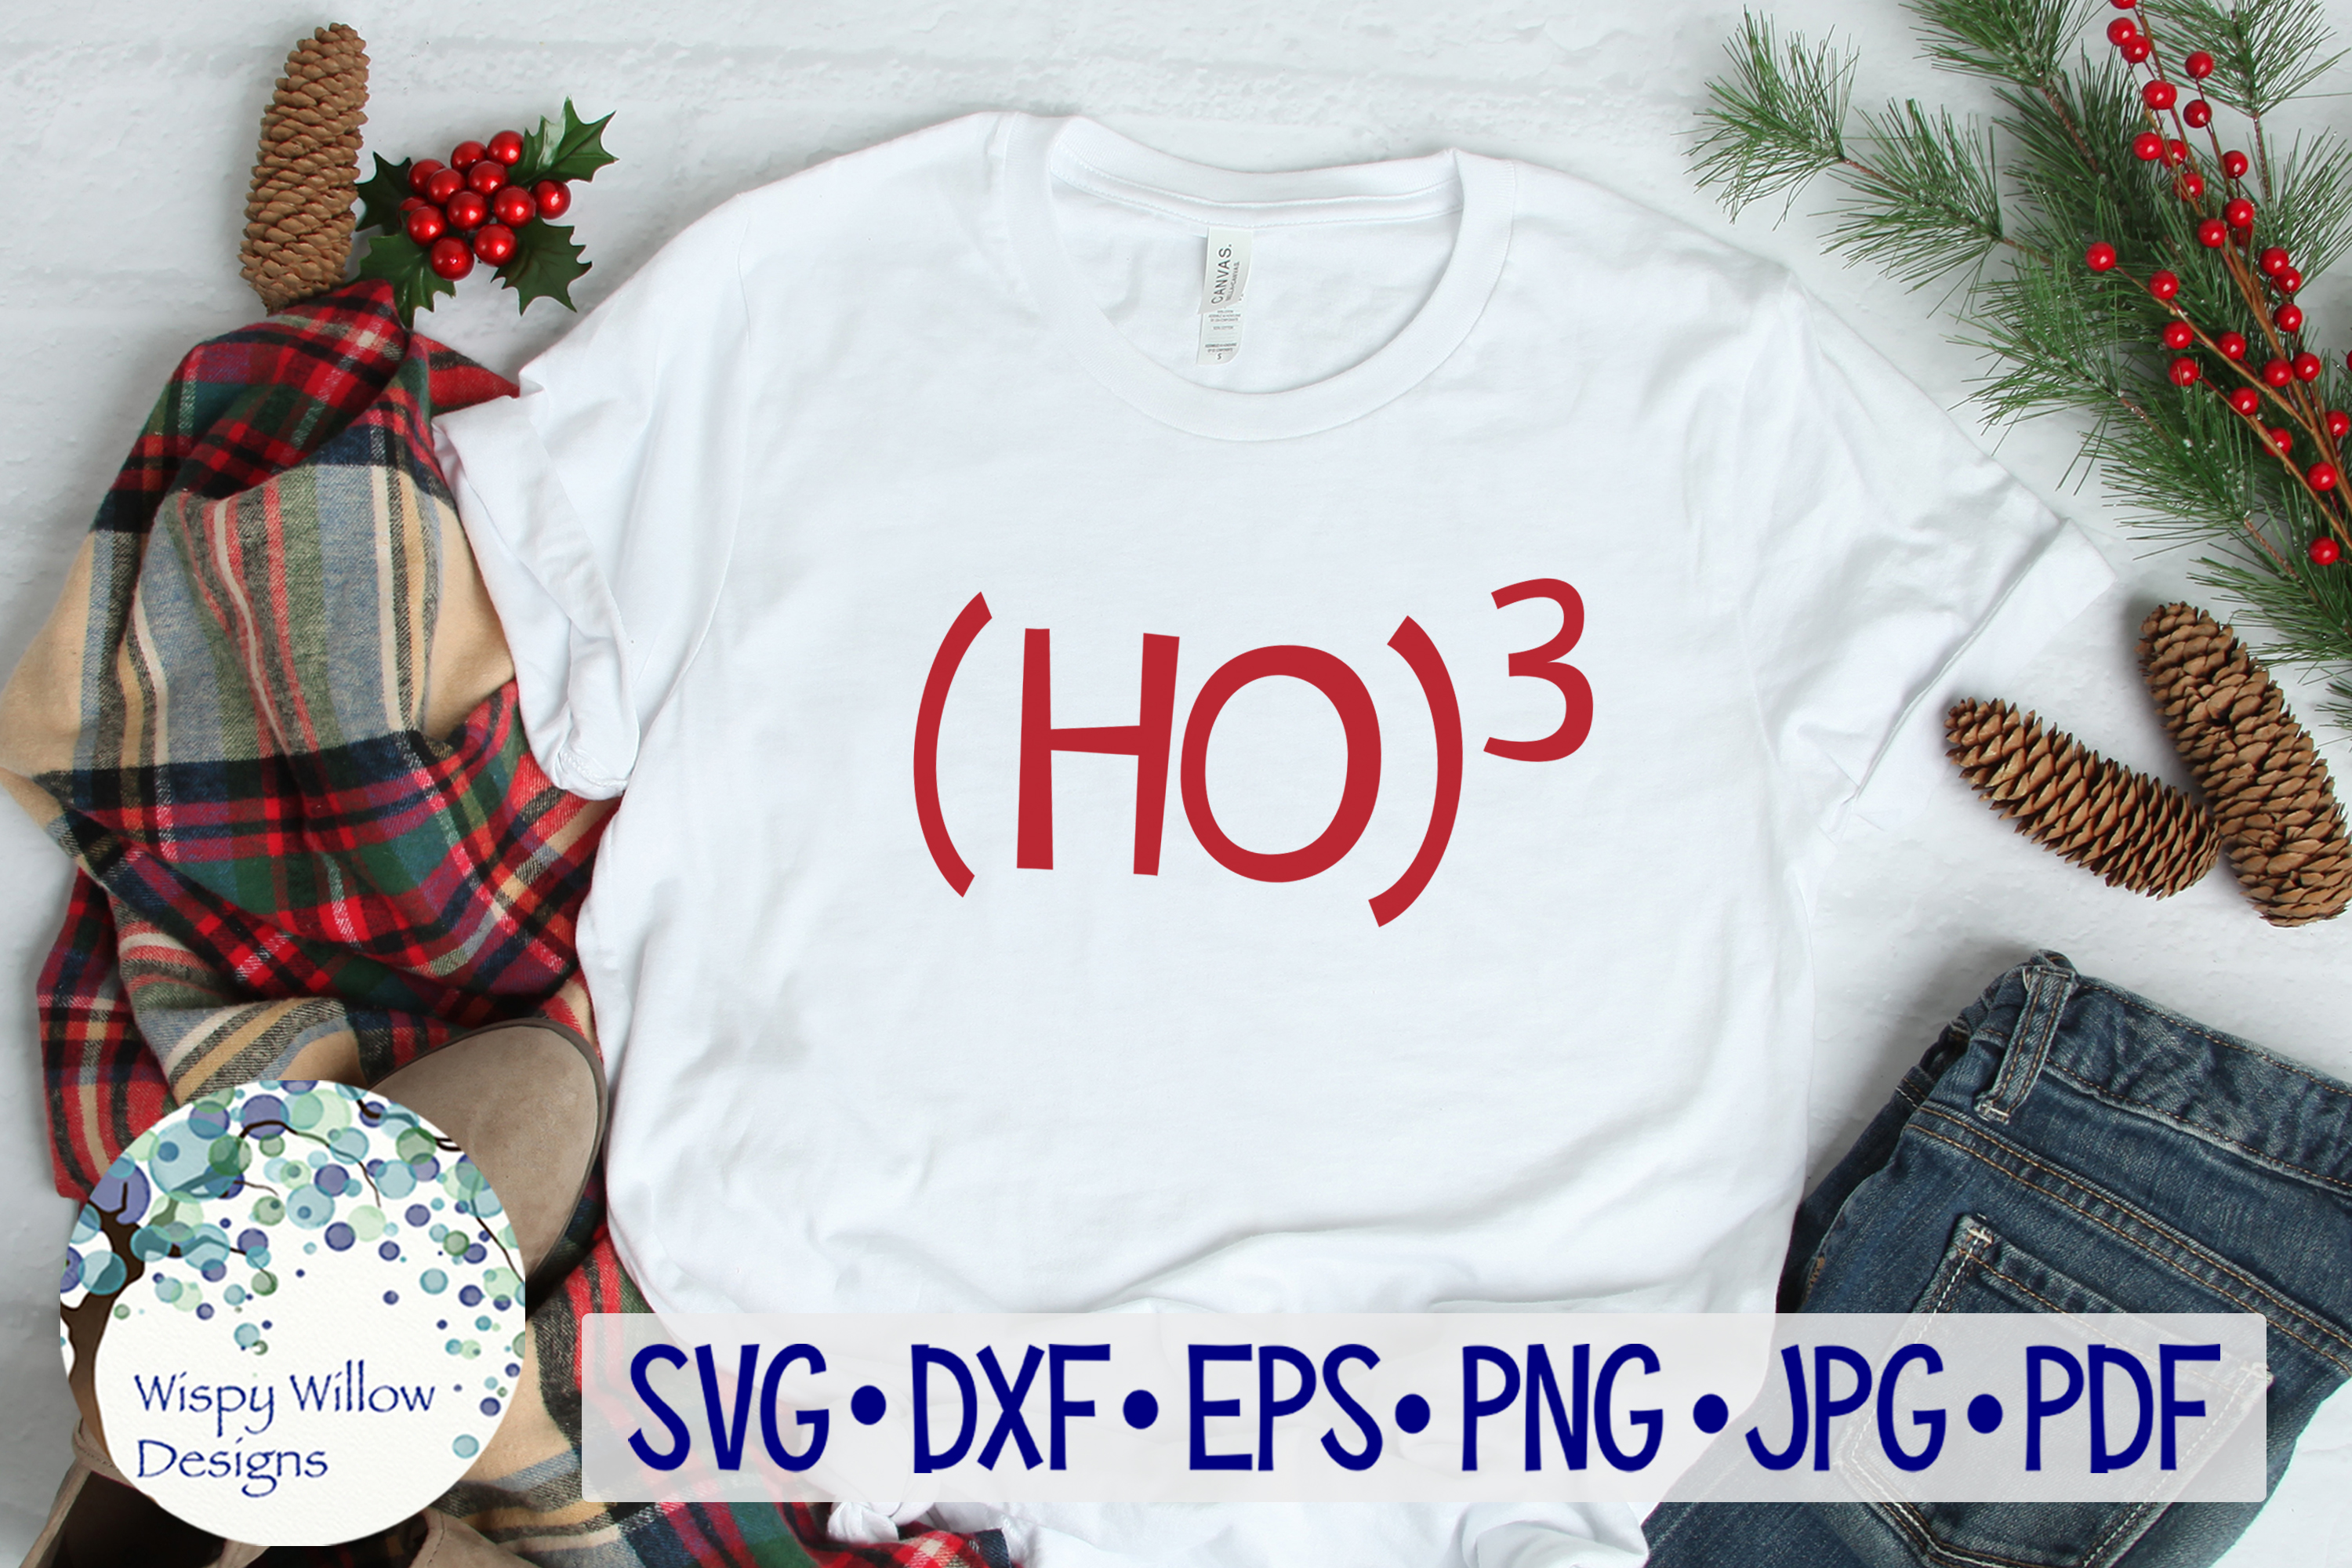 Download Free Ho 3 Ho Ho Ho Christmas Svg Graphic By Wispywillowdesigns for Cricut Explore, Silhouette and other cutting machines.